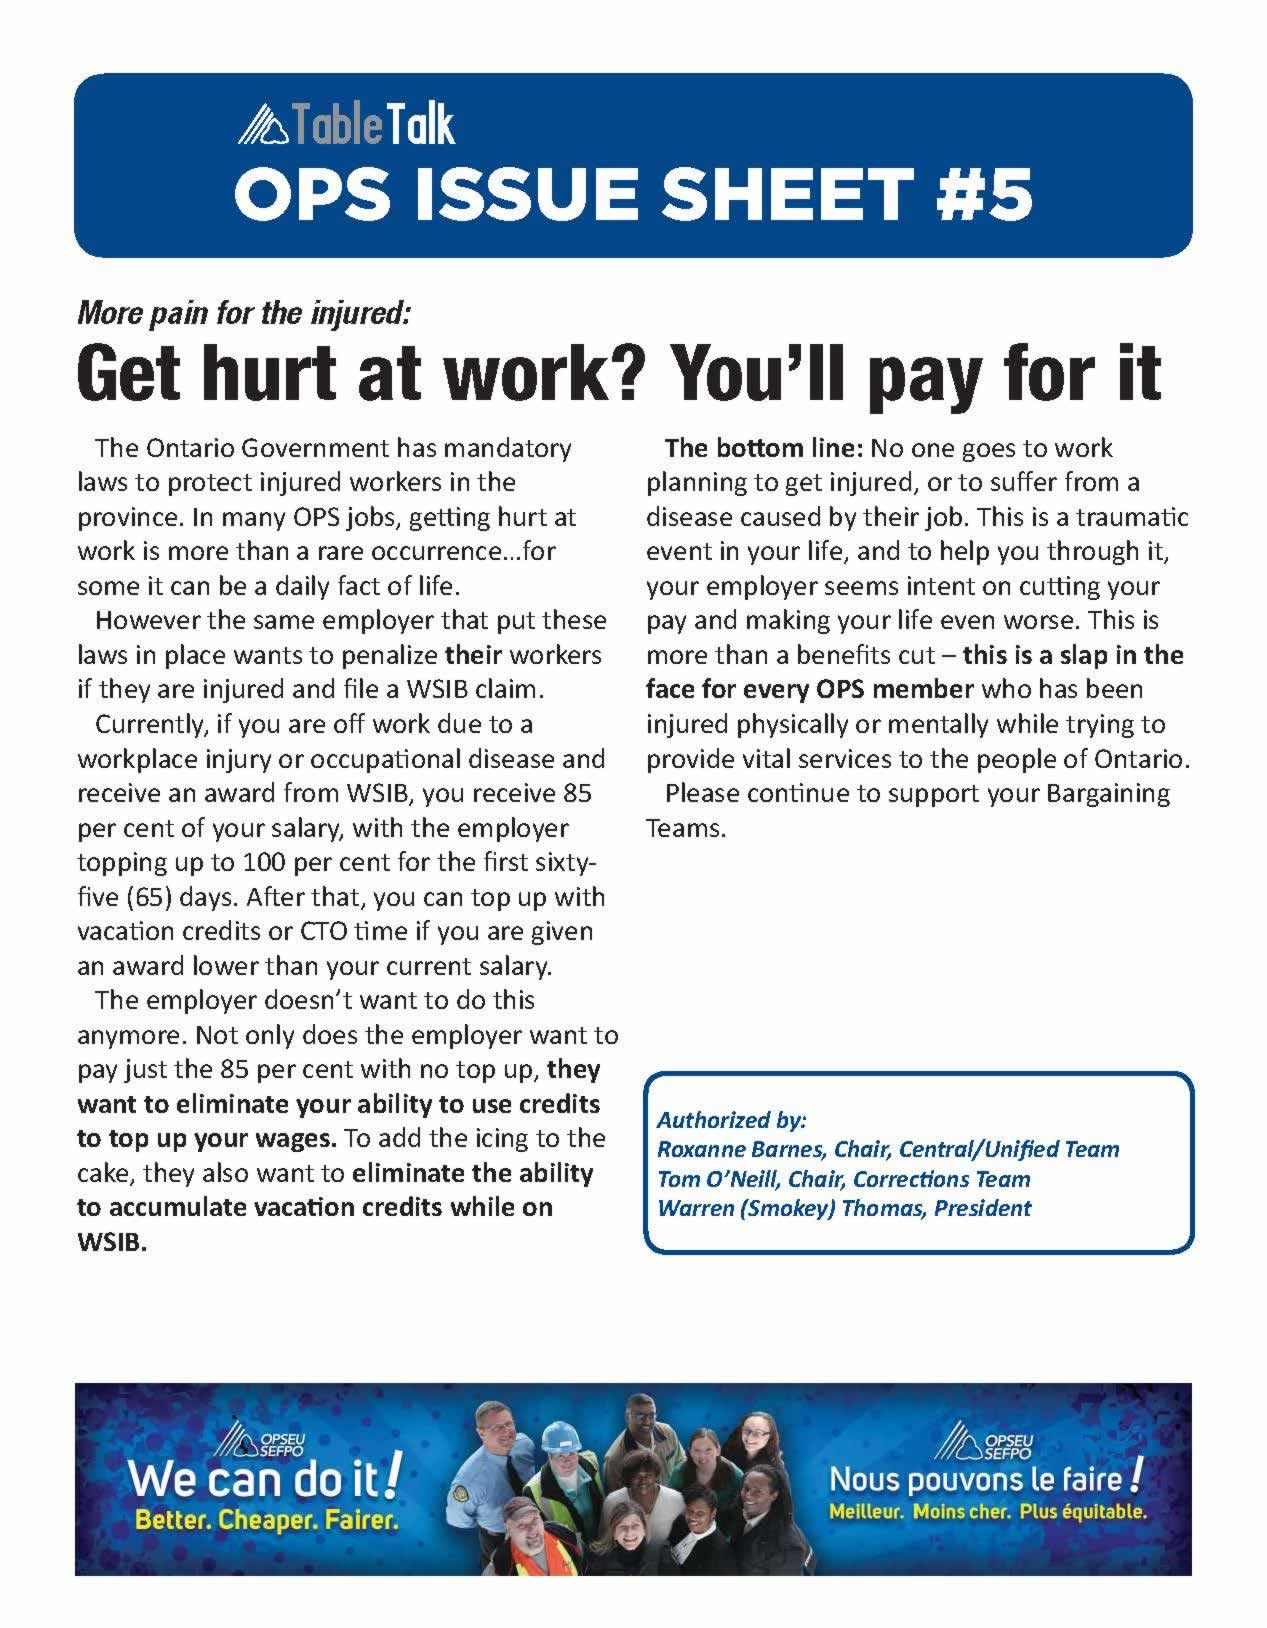 OPS Issue Sheet. More pain for the injured: get hurt at work? you'll pay for it